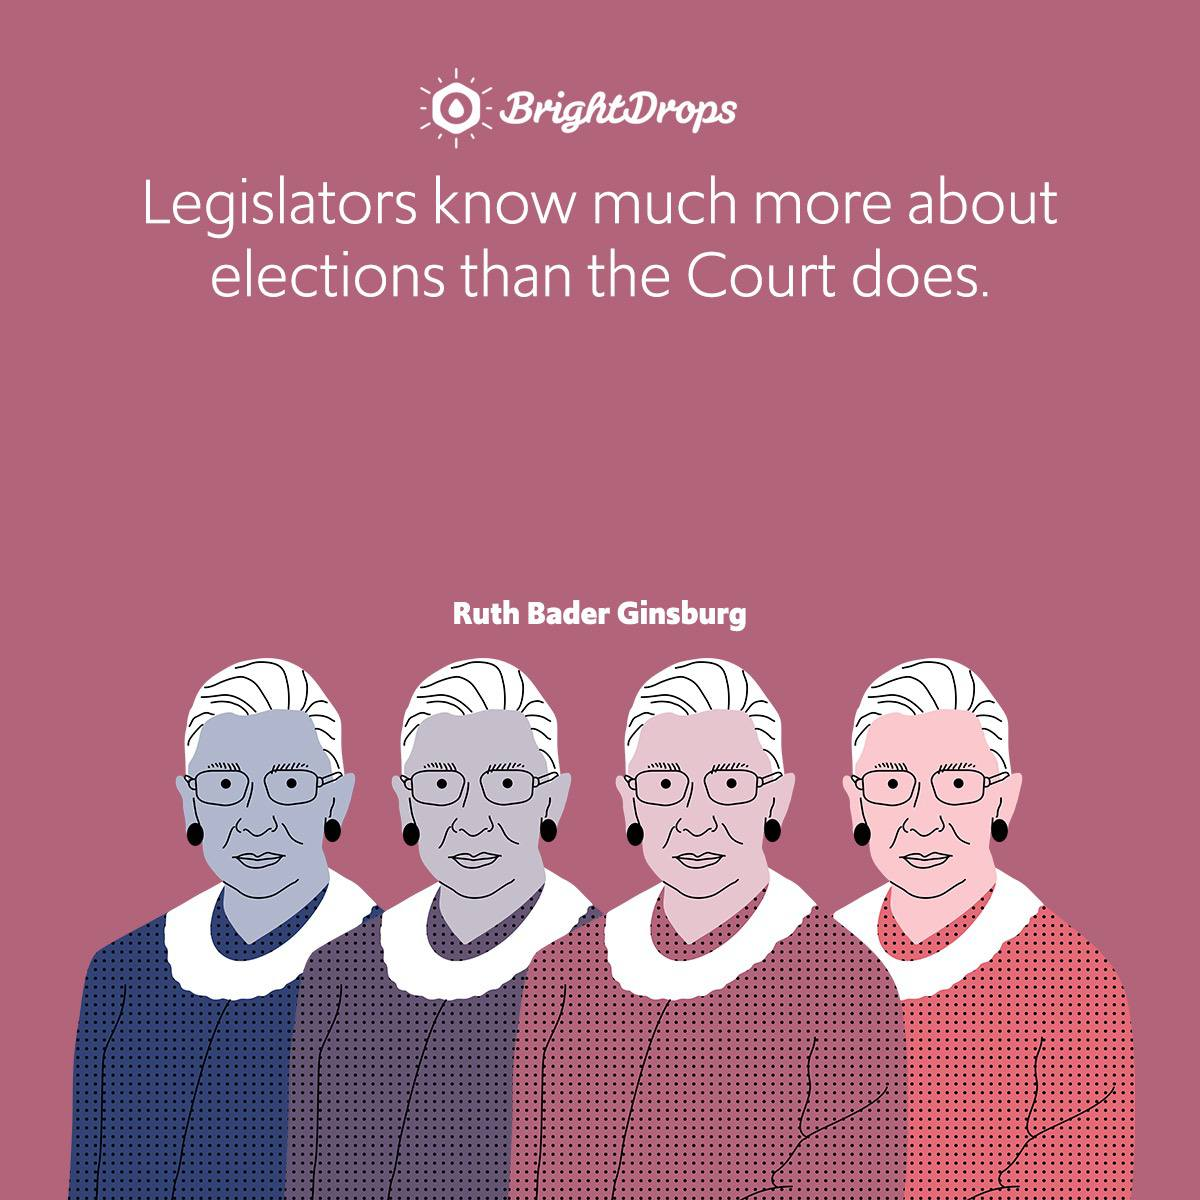 Legislators know much more about elections than the Court does.